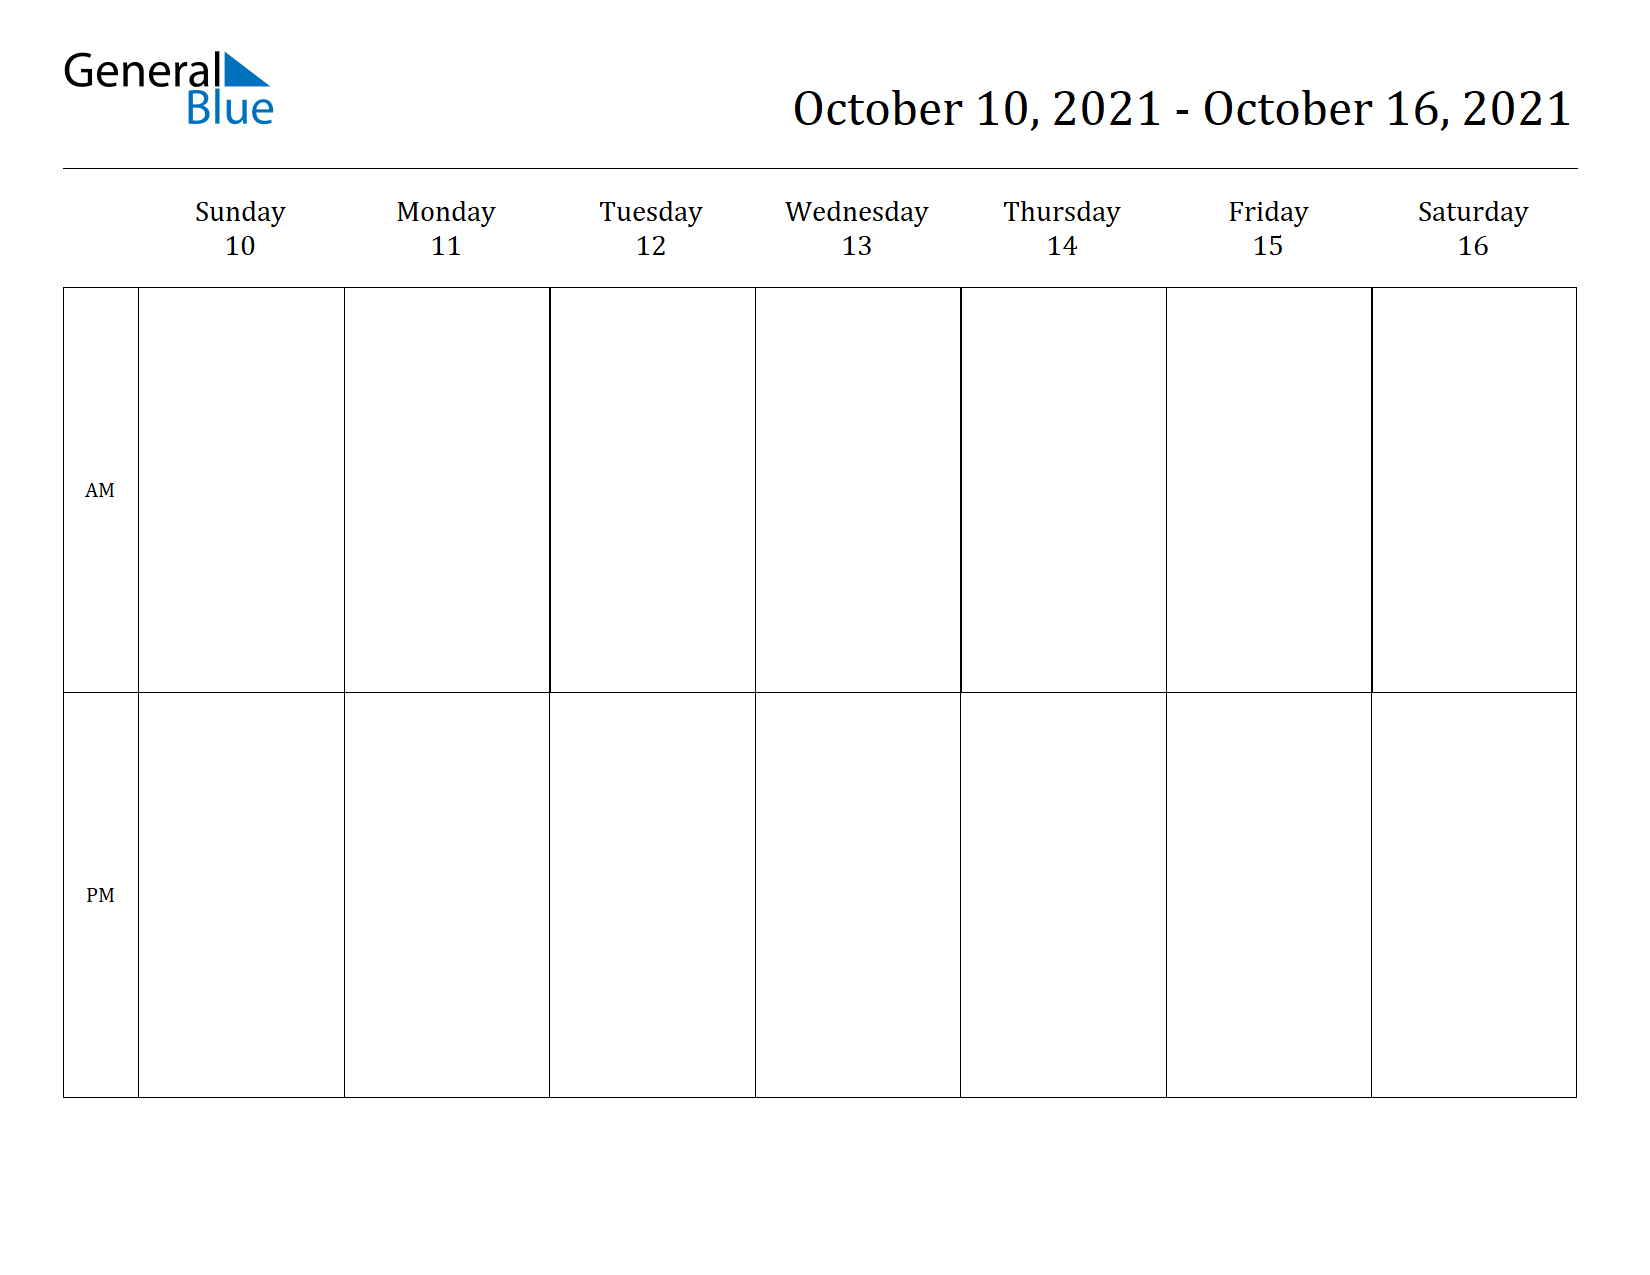 Weekly Calendar for Oct 10, 2021 to Oct 16, 2021